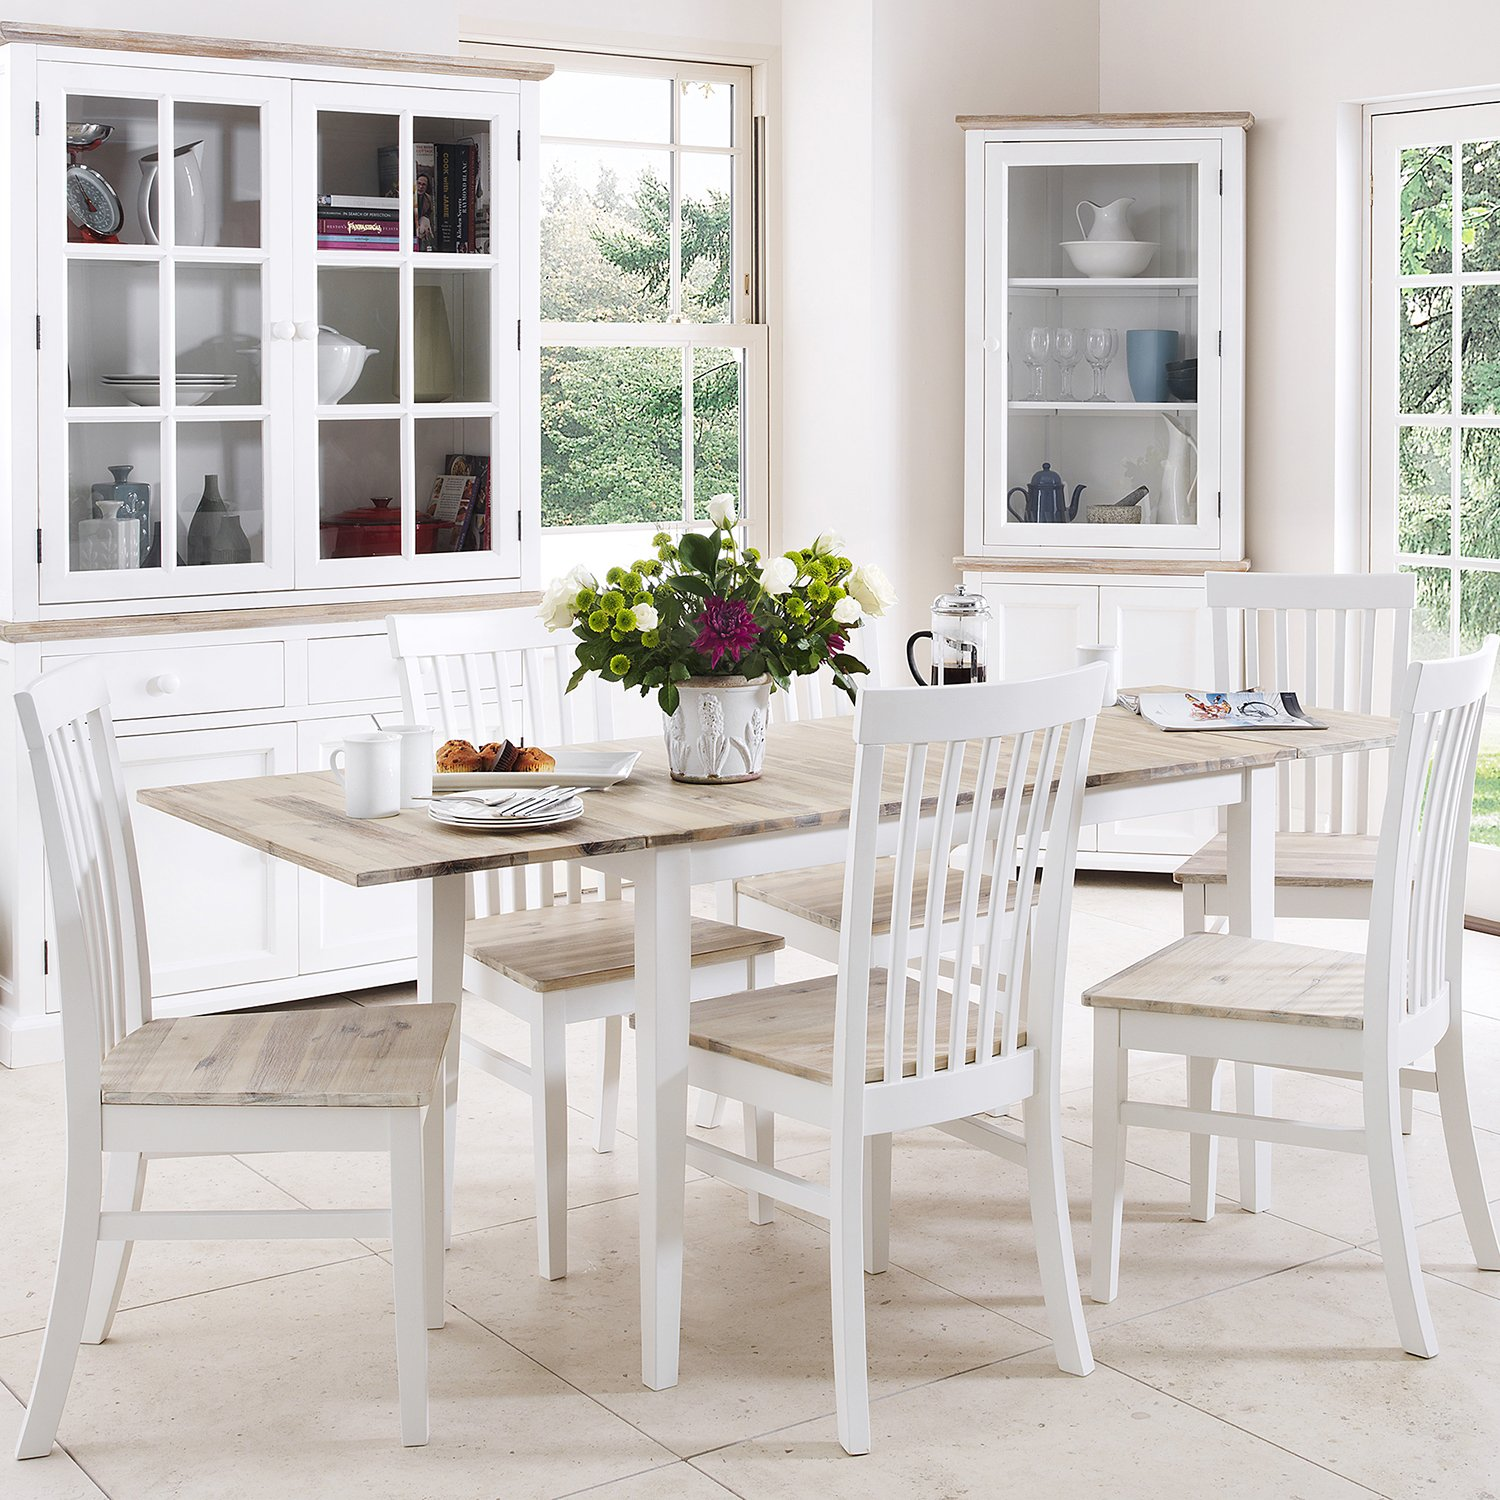 Florence Extending Table And 6 Chairs Set Kitchen Dining Chair In White Colour With Limed Hardwood Top Amazoncouk Home